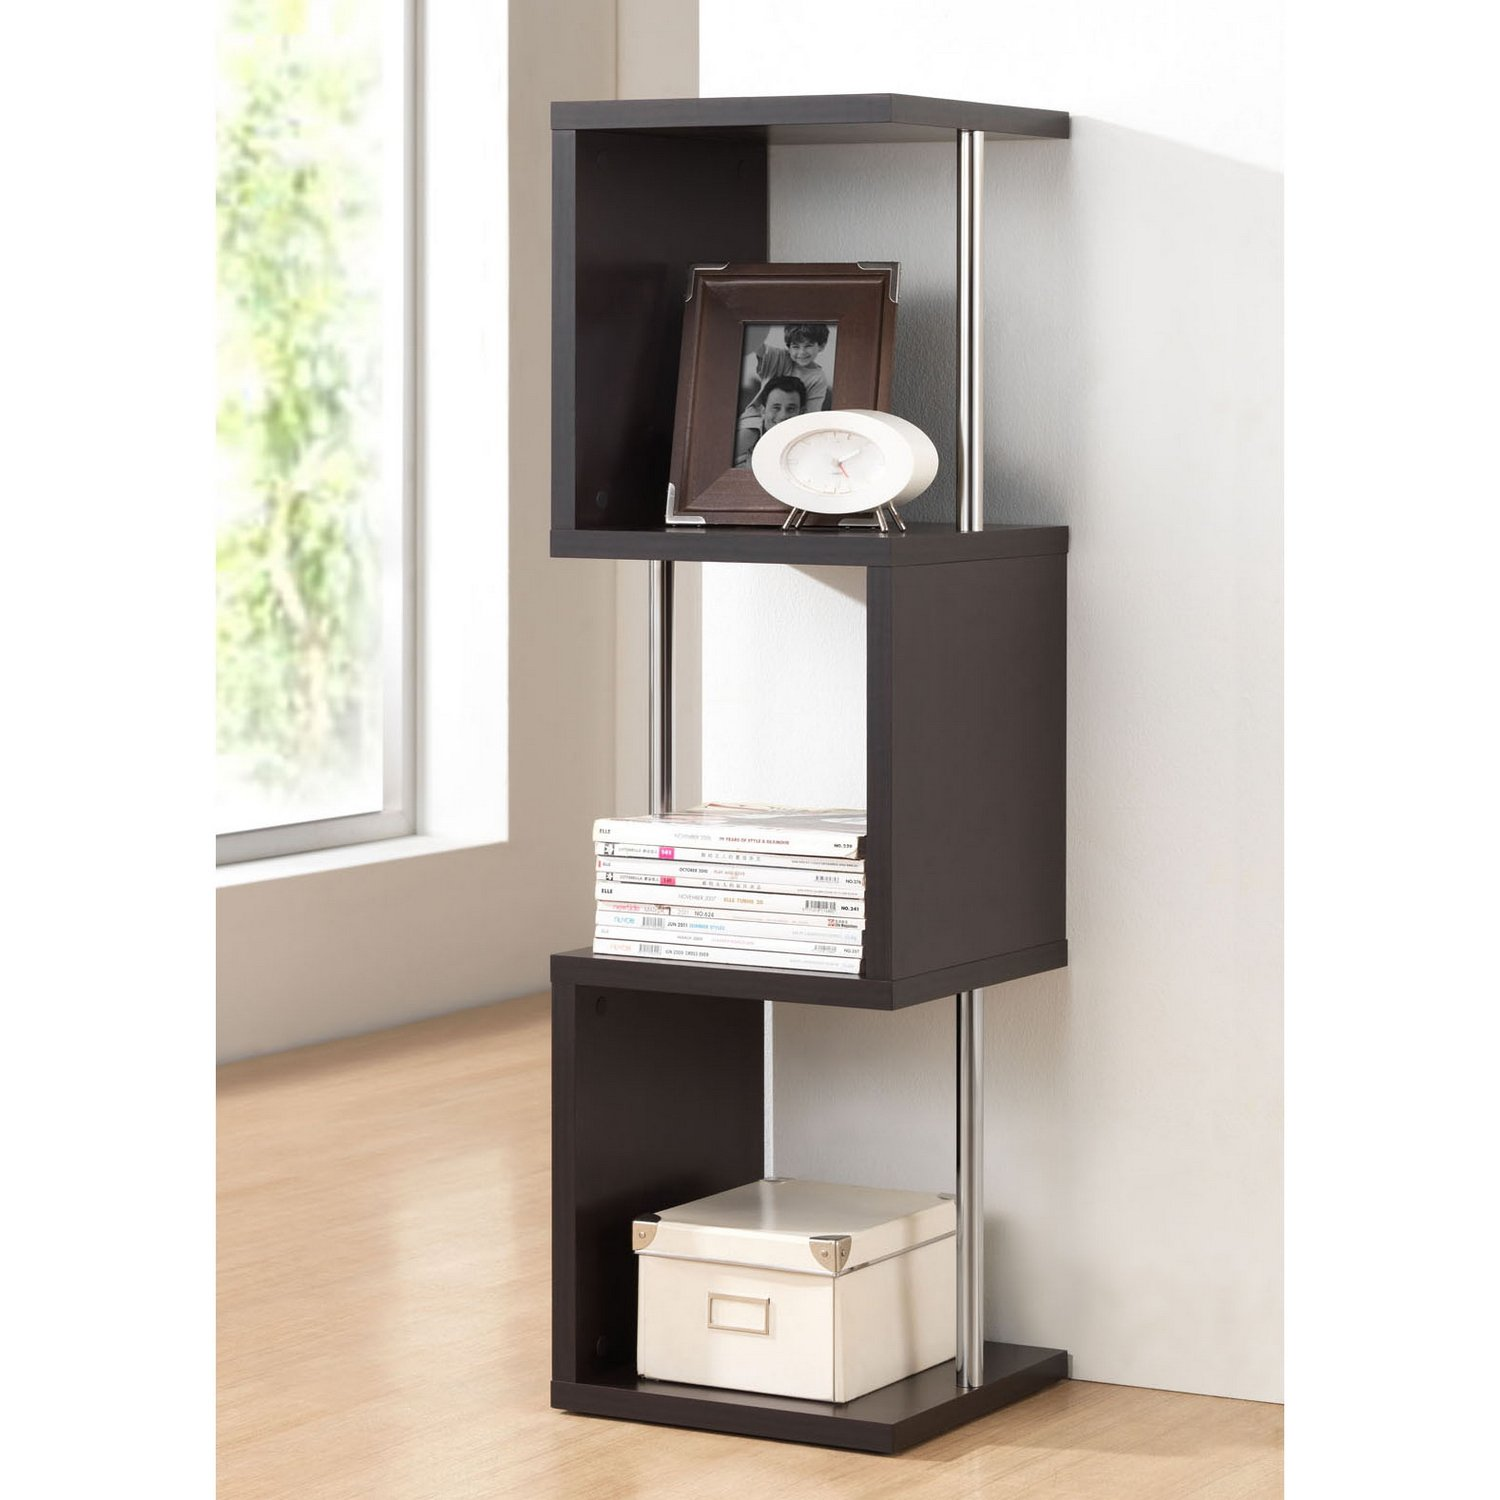 Amazon.com: Baxton Studio Lindy 3-Tier Modern Display Shelf, Cappuccino:  Kitchen & Dining